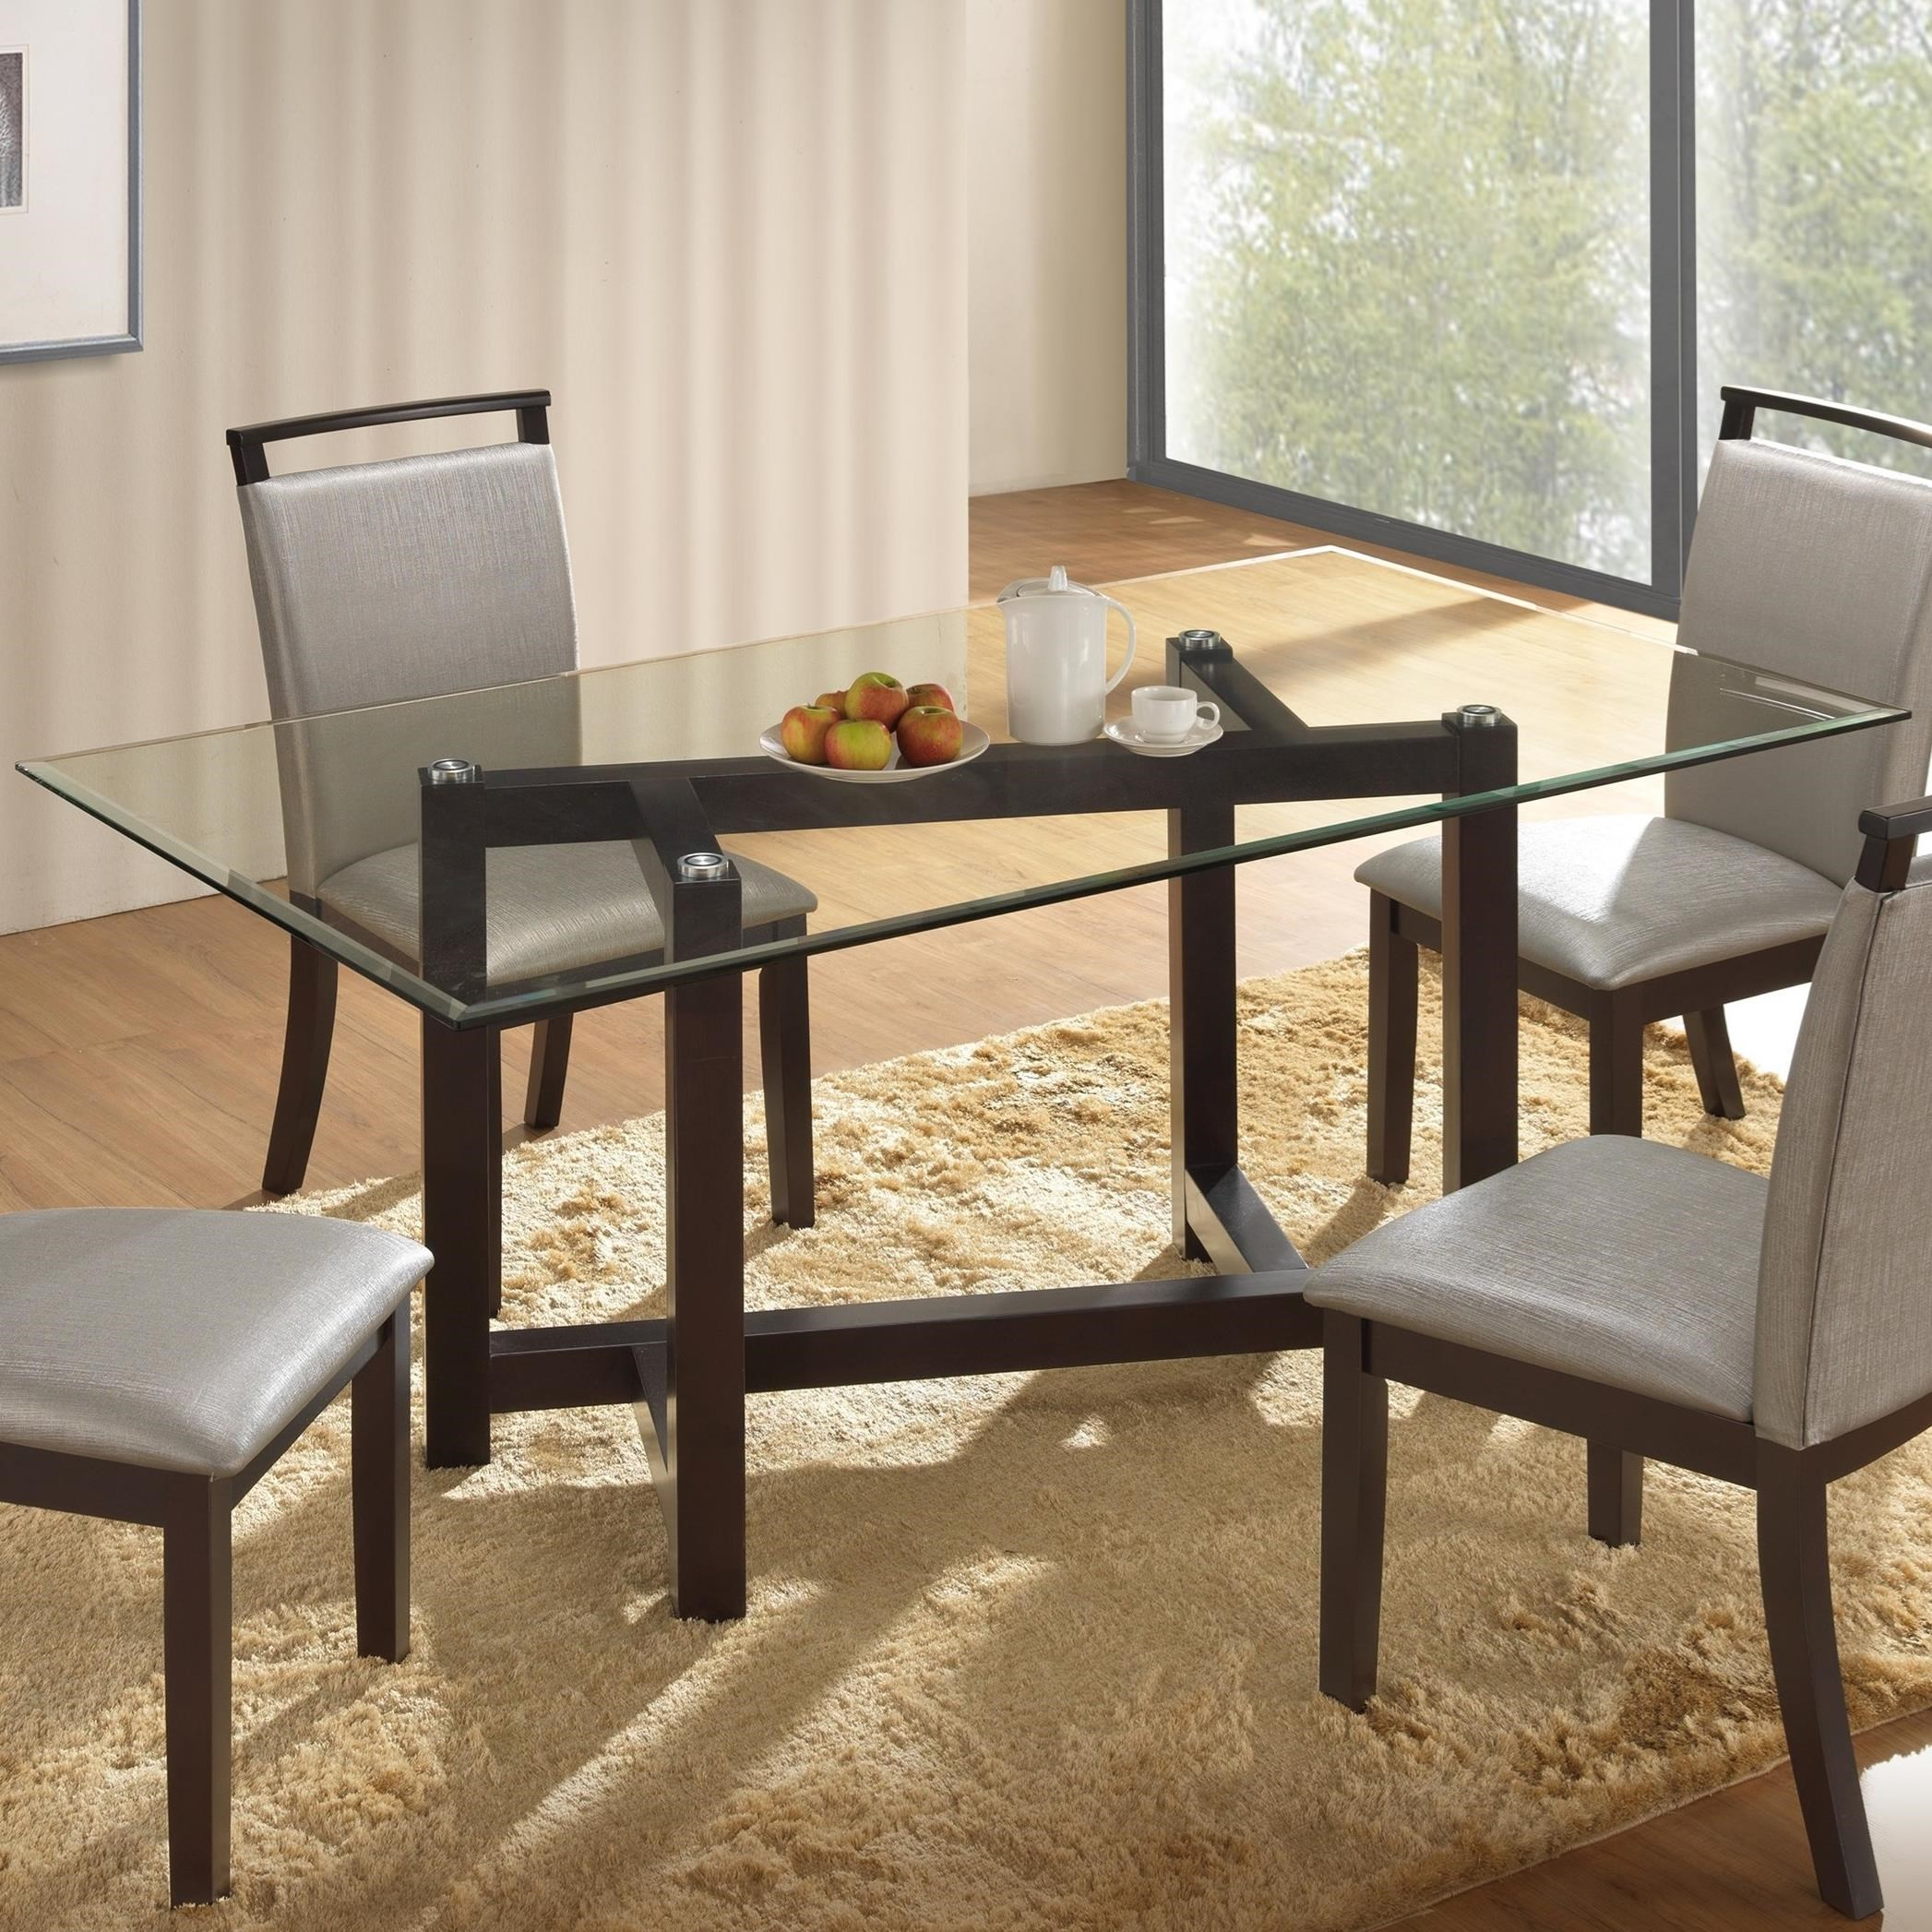 New Classic Natasha Glass Top Dining Table - Item Number: D3972-10GT+10GB